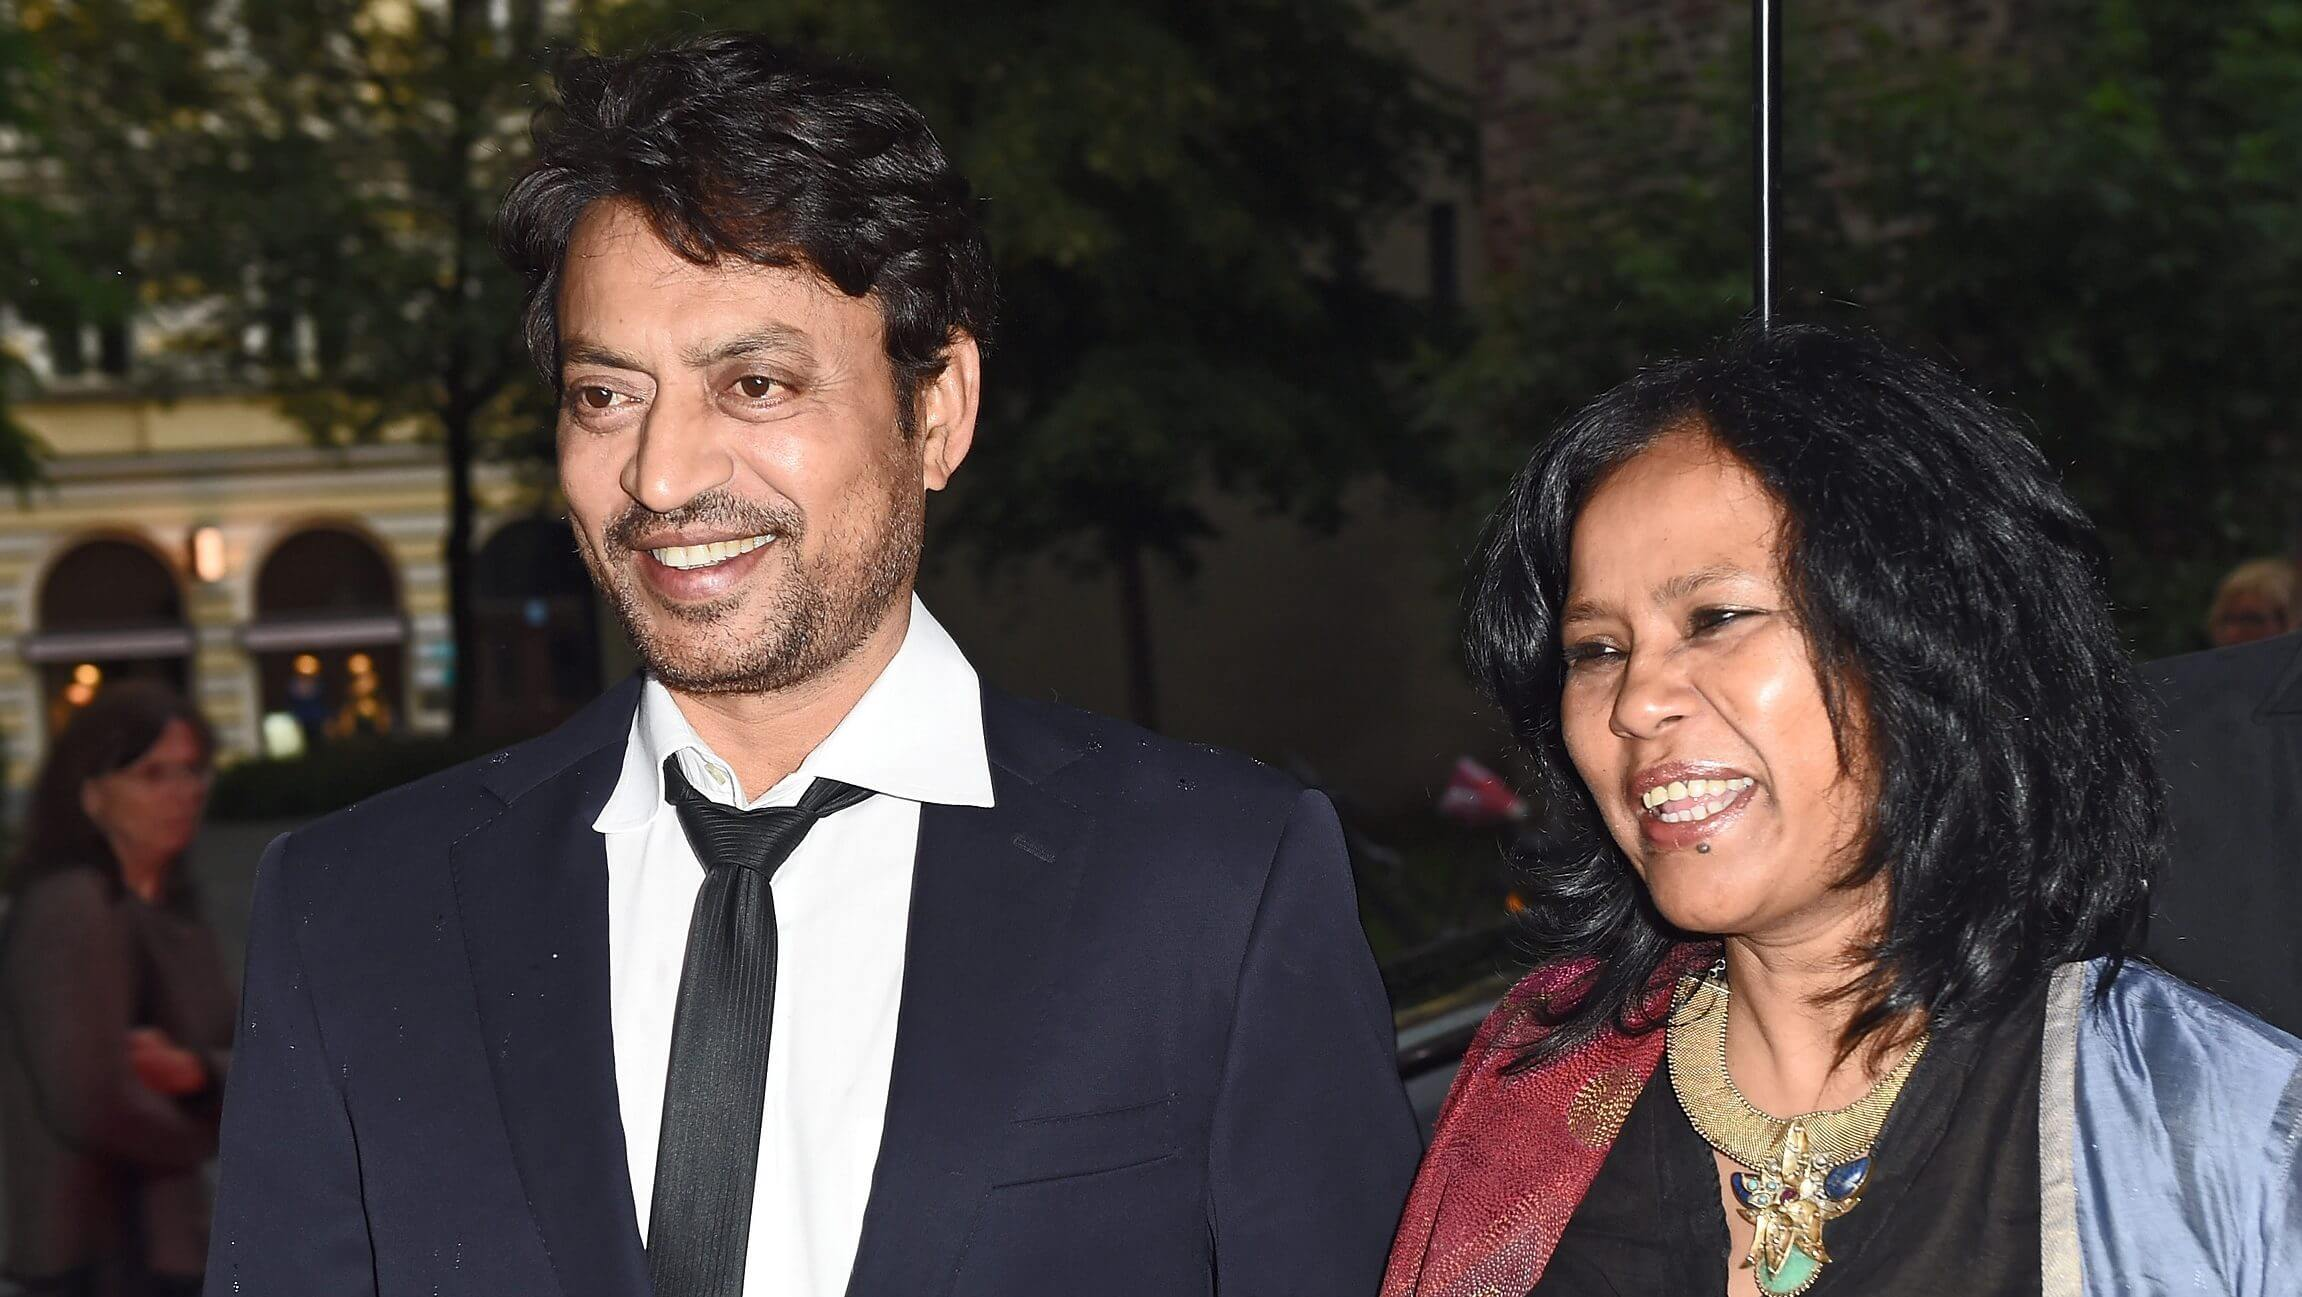 Irrfan Khan and wife Sutapa Sikdar attend the Qissa Premiere on June 30, 2014 in Munich, Germany